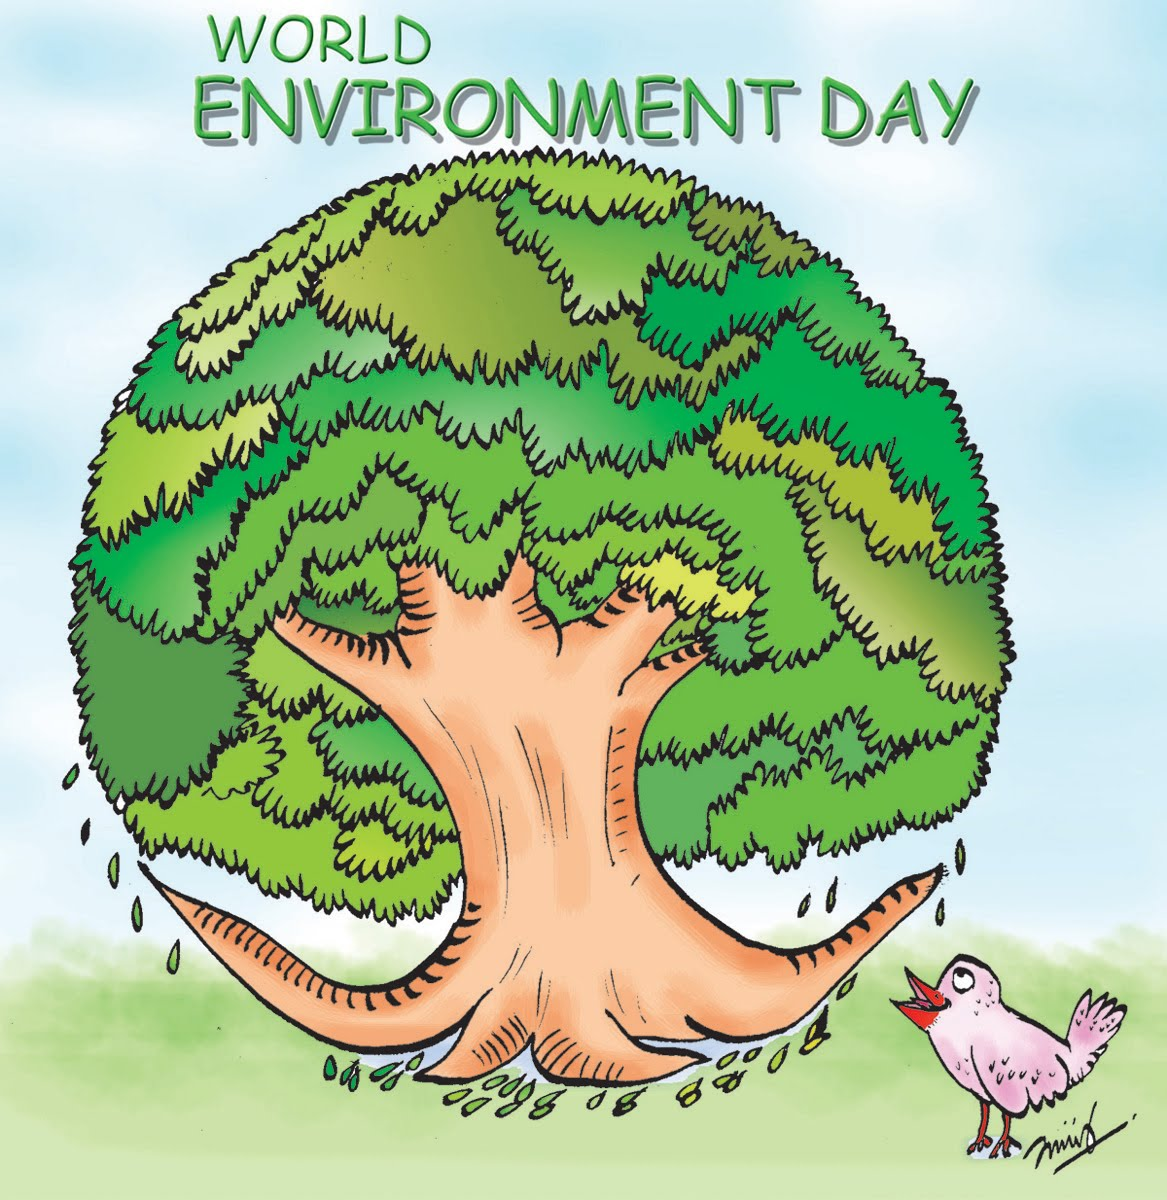 world environment day World environment day (wed) is celebrated every year on 5 june to raise global awareness to take positive environmental action to protect nature and the planet earth.